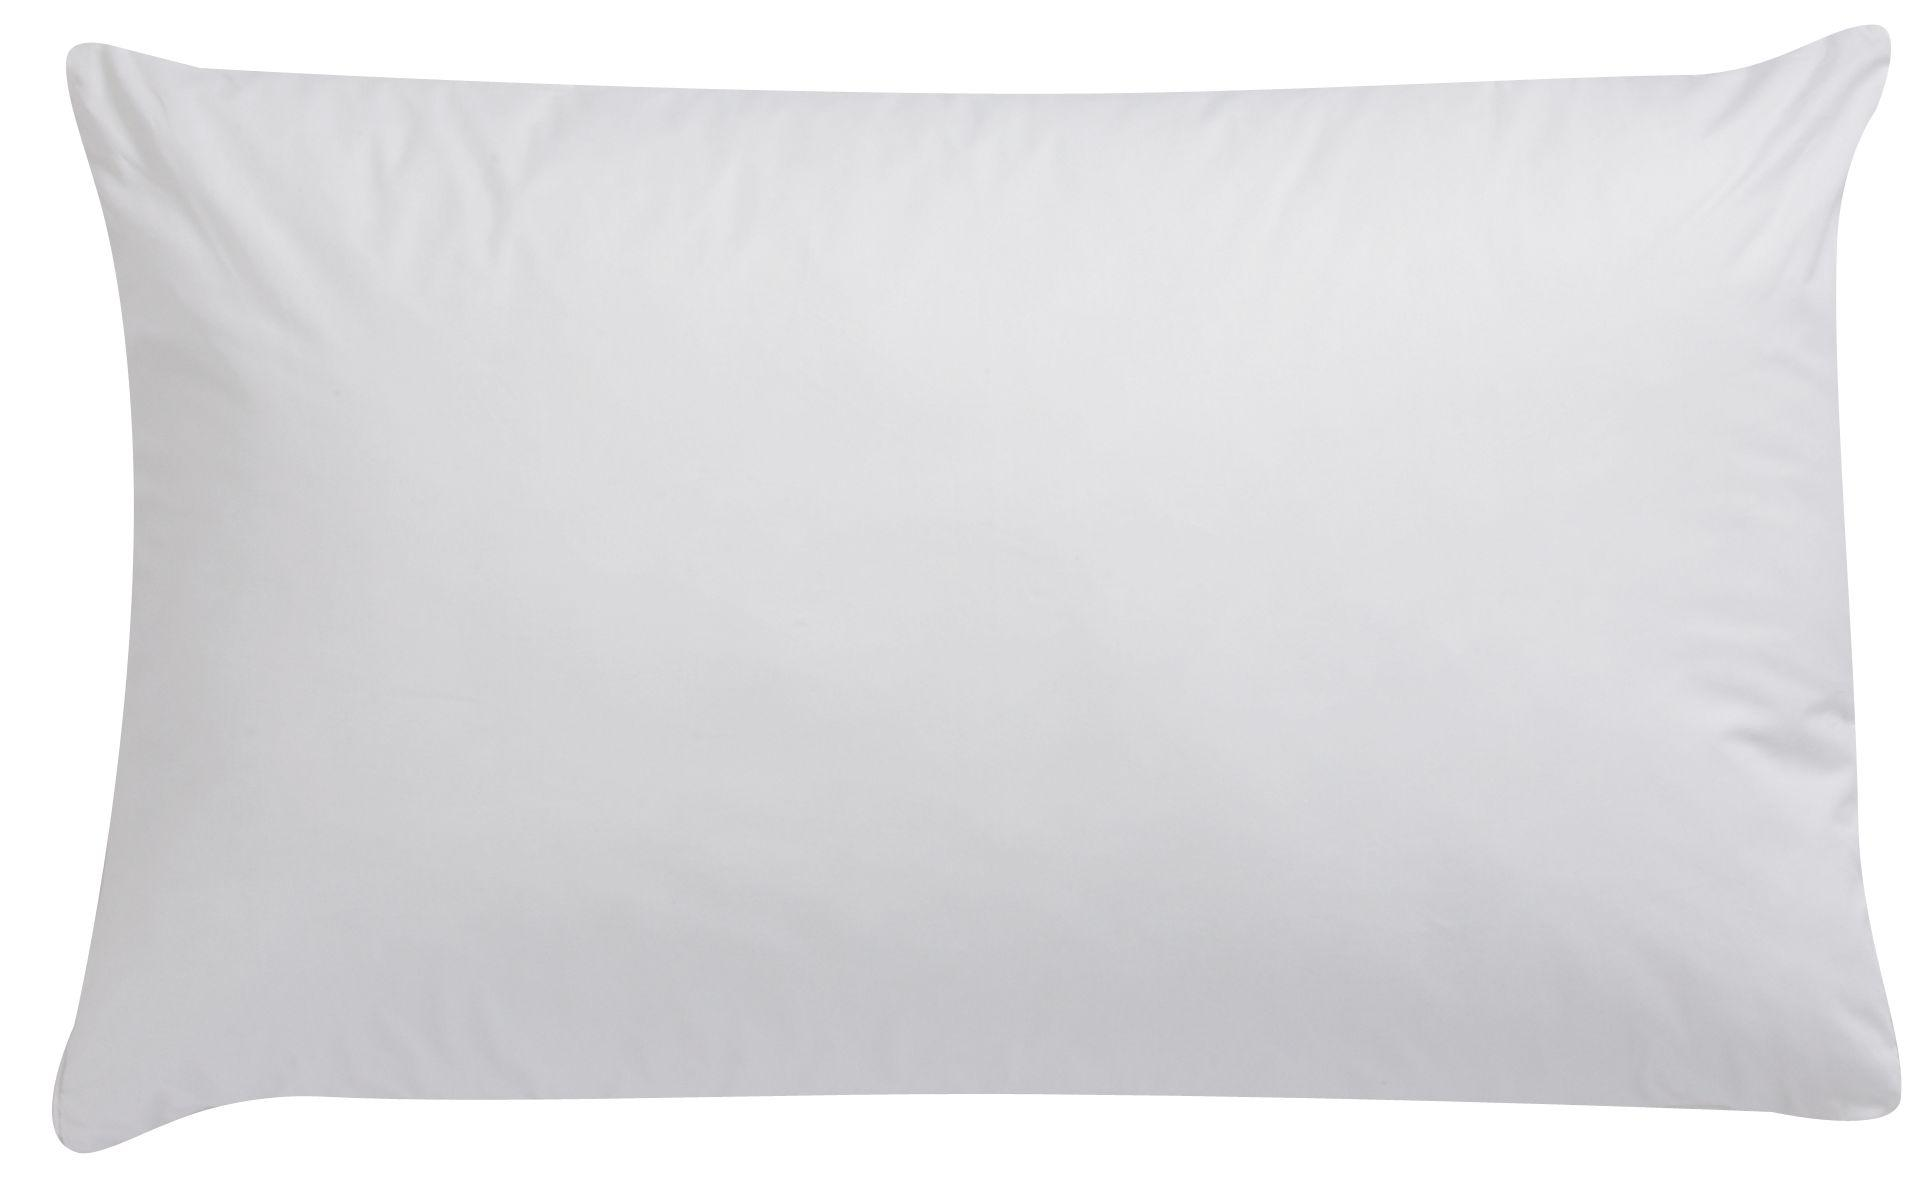 Pillows Png image #28457